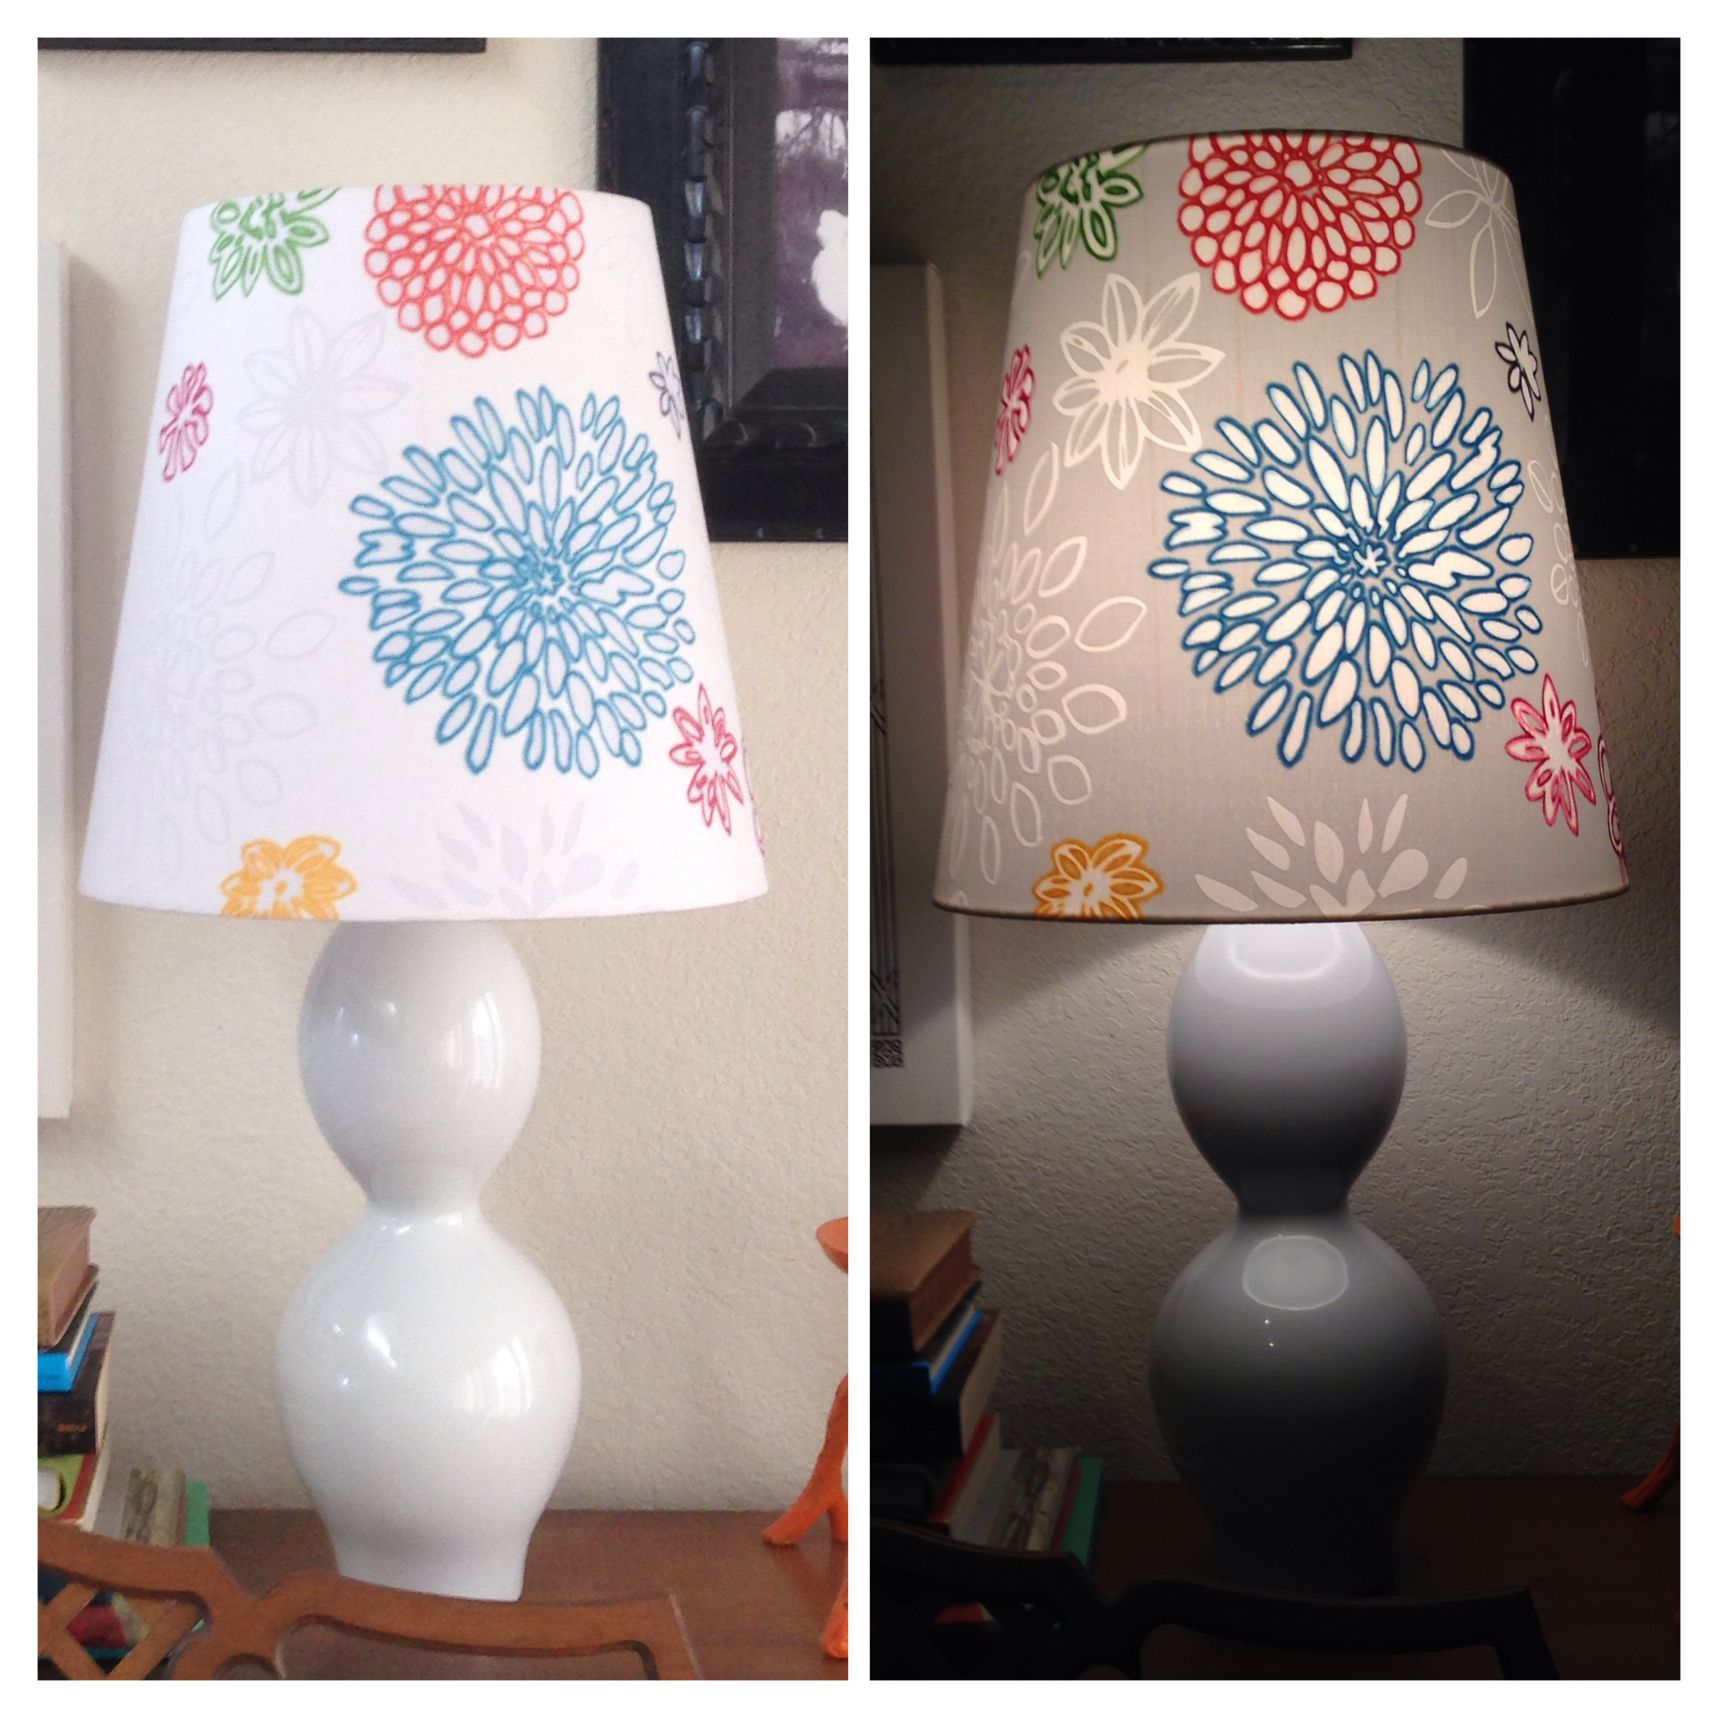 Ikea Lampshade Sharpies In Various Colors Awesome Colorful Lampshade Design De Interiores Arte